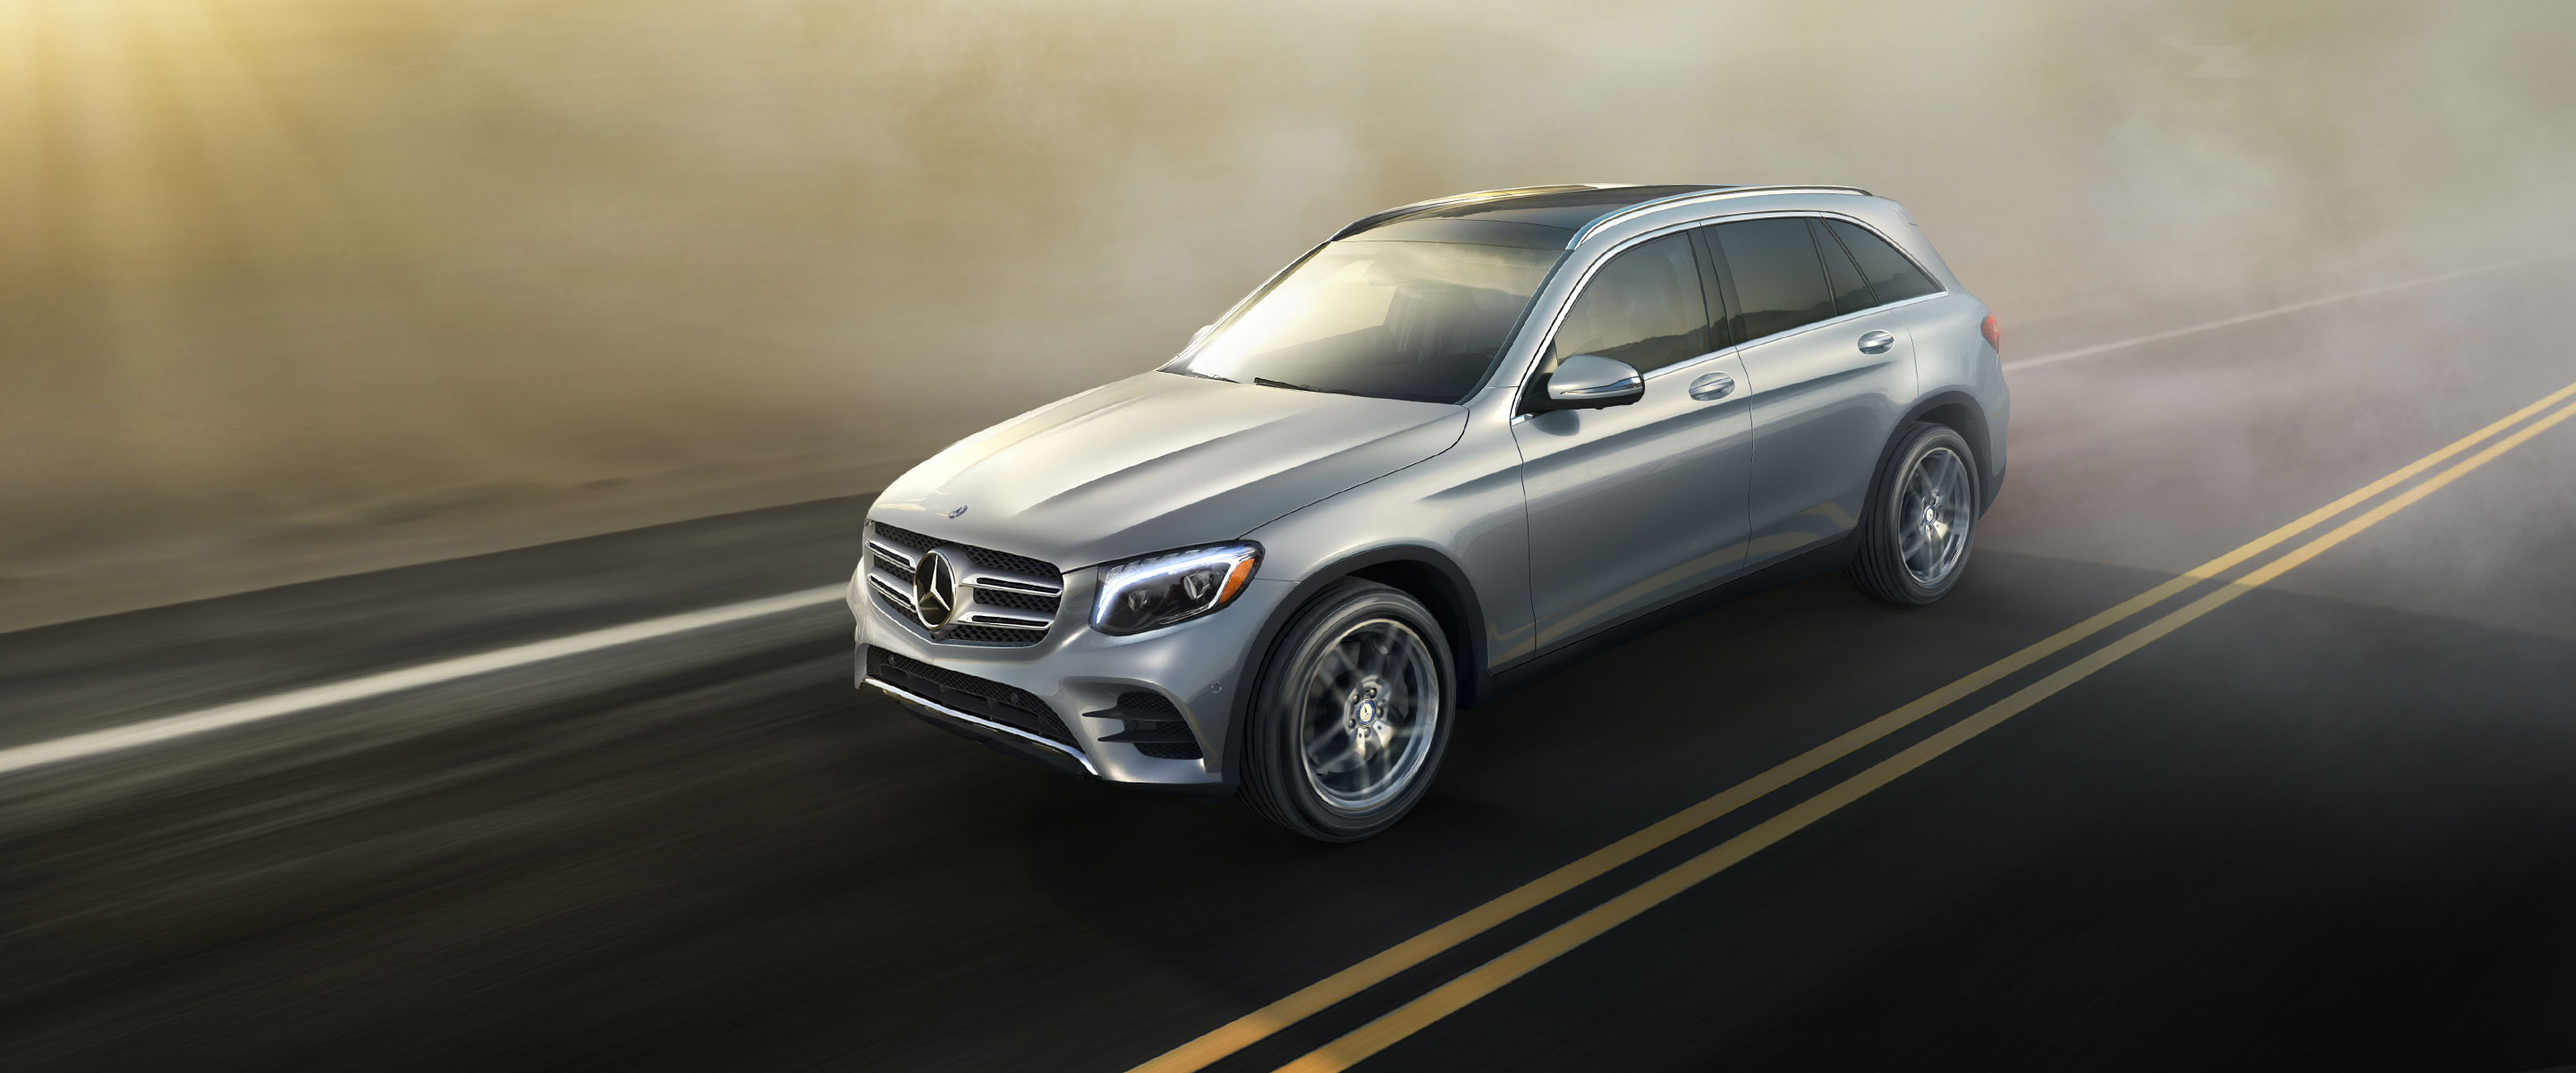 mercedes benz glc price lease ann arbor mi. Black Bedroom Furniture Sets. Home Design Ideas